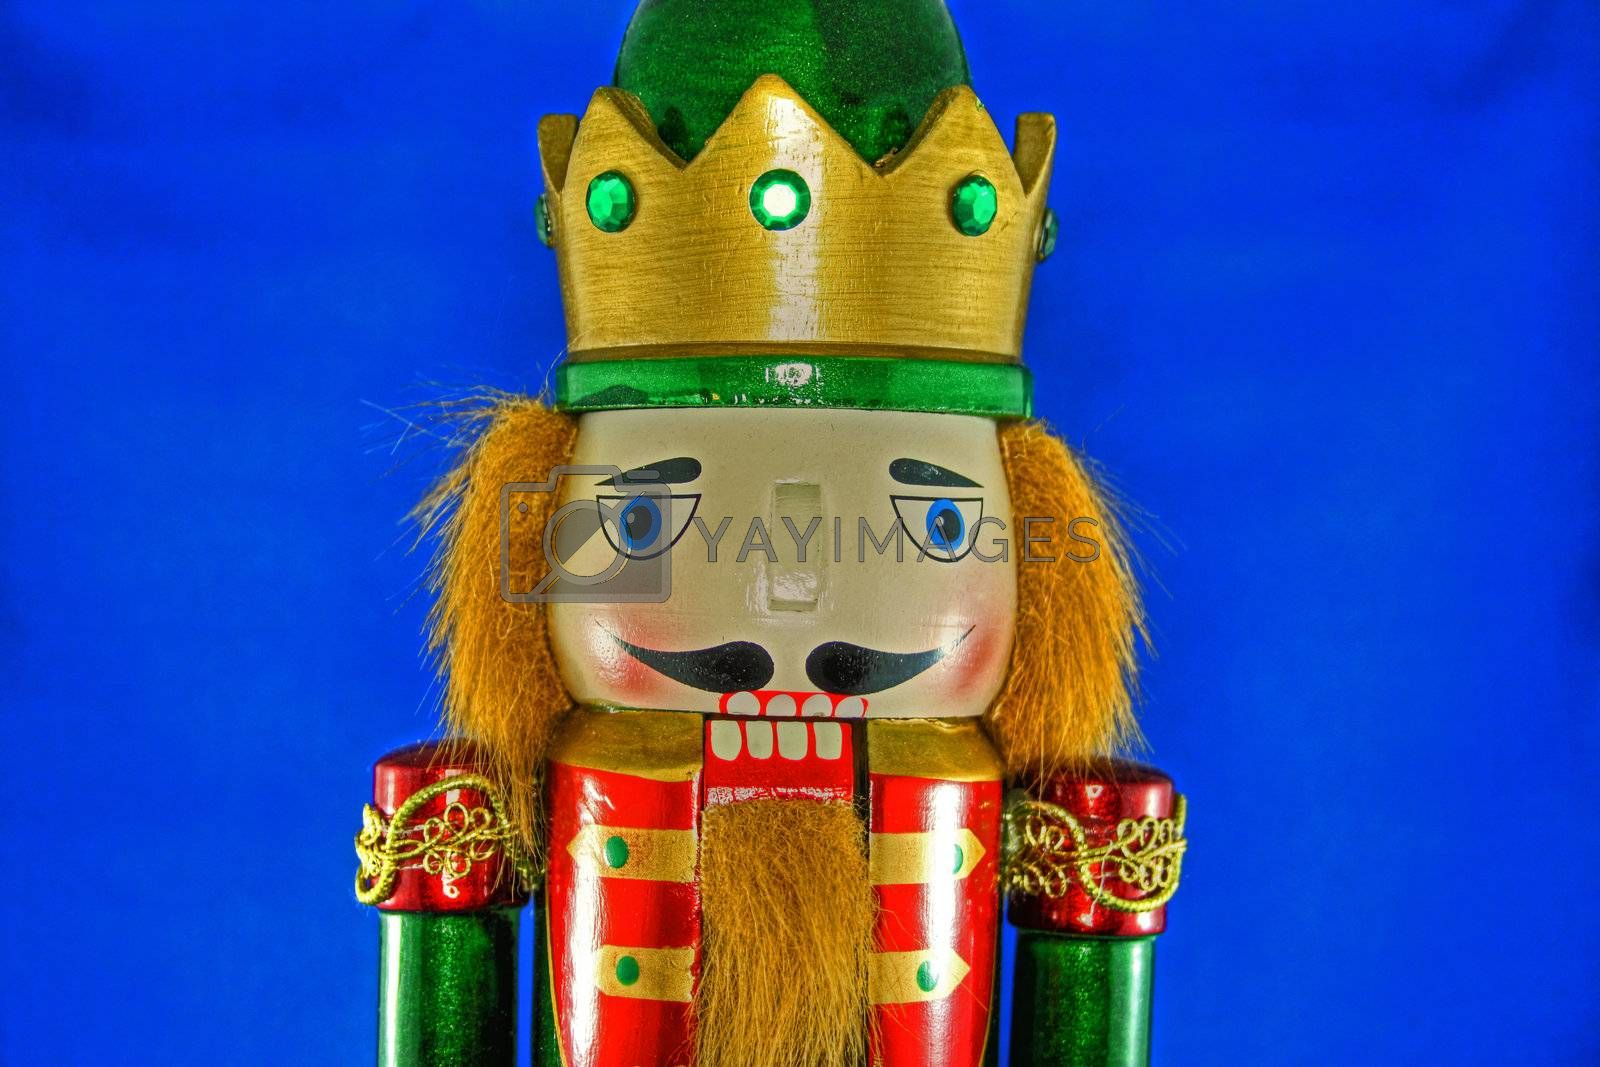 Close up view of Nutcracker on blue background